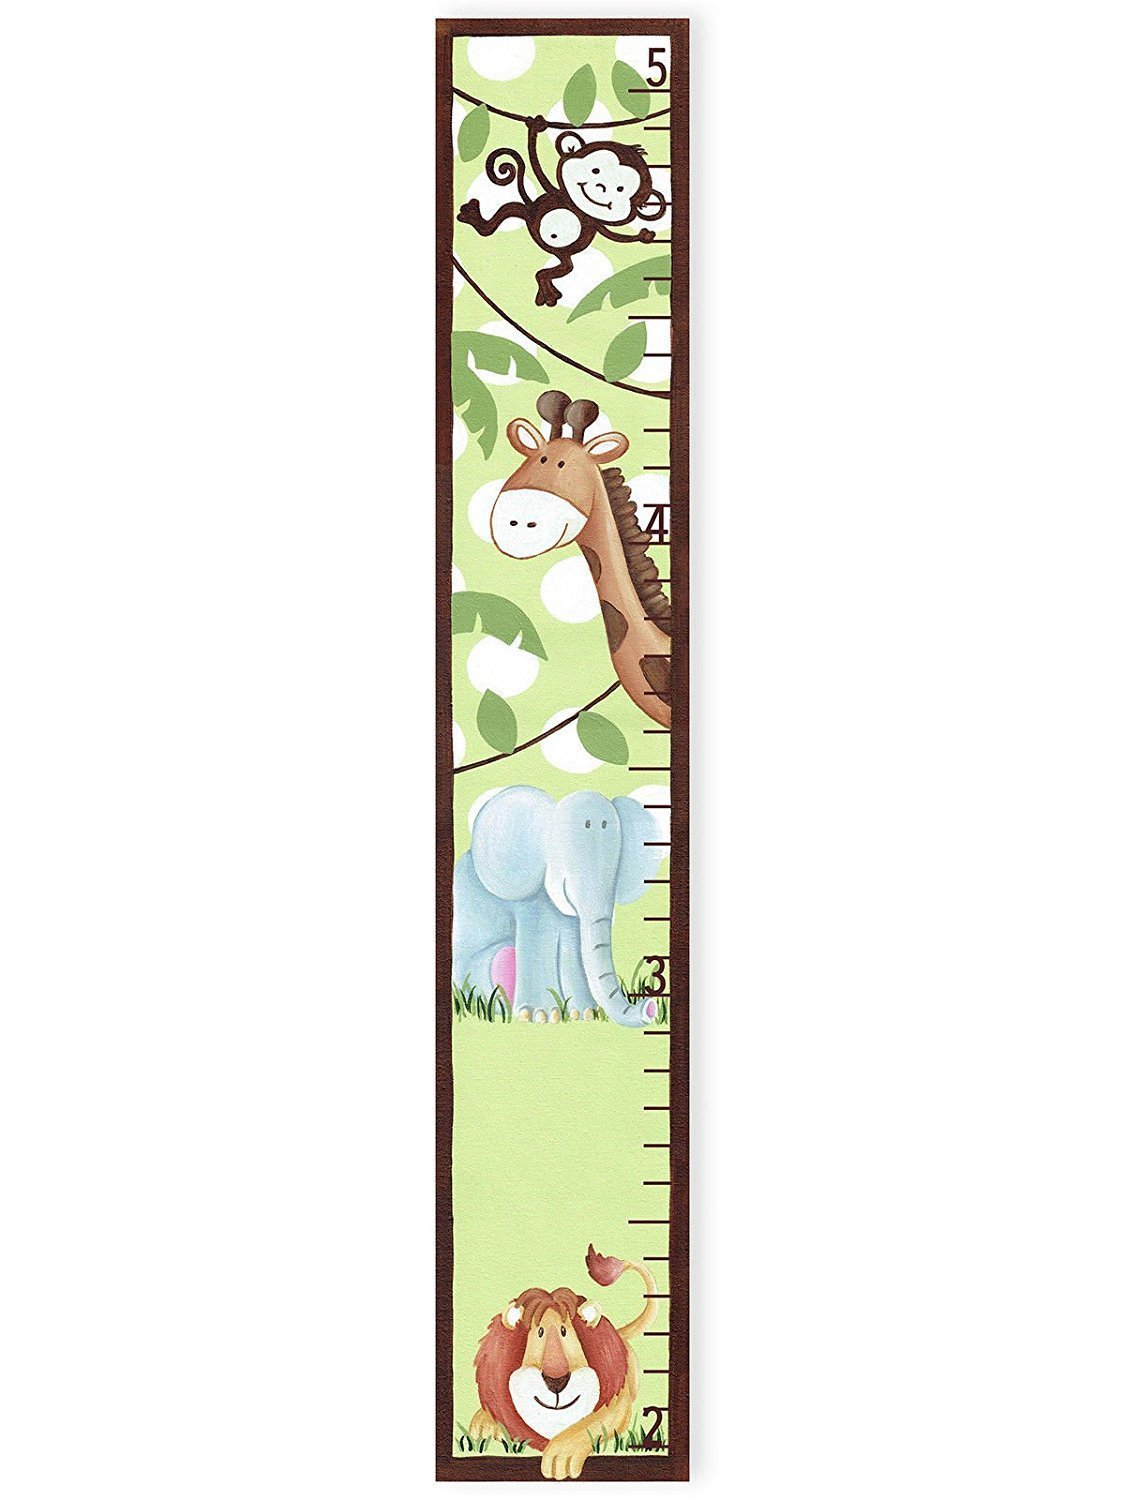 Stupell Home Décor Whimsical Jungle Growth Chart, 7 x 0.5 x 39, Proudly Made in USA by The Kids Room by Stupell